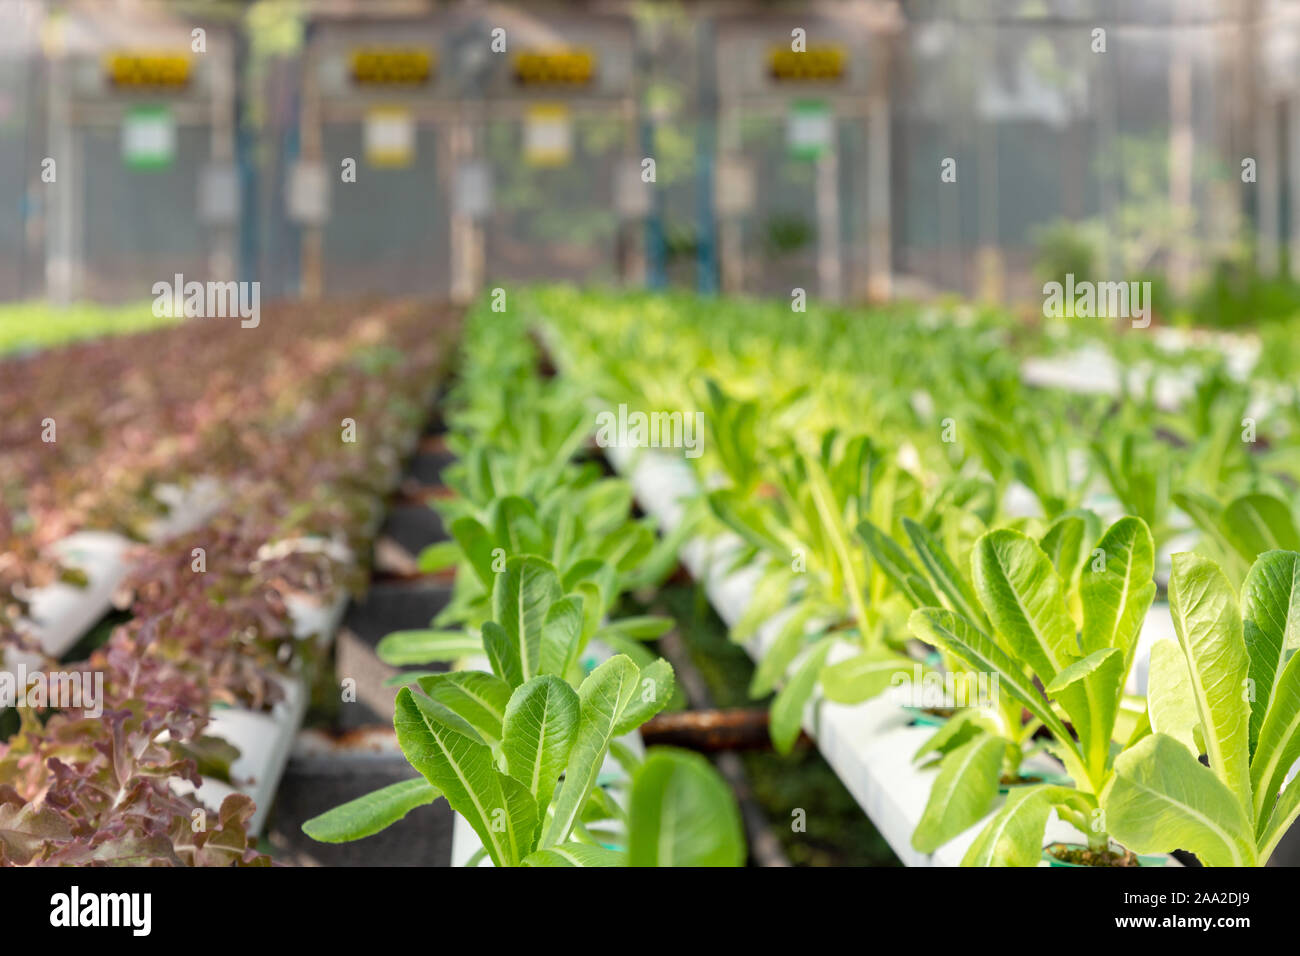 fresh young organic green cos lettuce and red oak lettuce plant are growing on the water without soil in the hydroponic system at vegetable salad farm Stock Photo